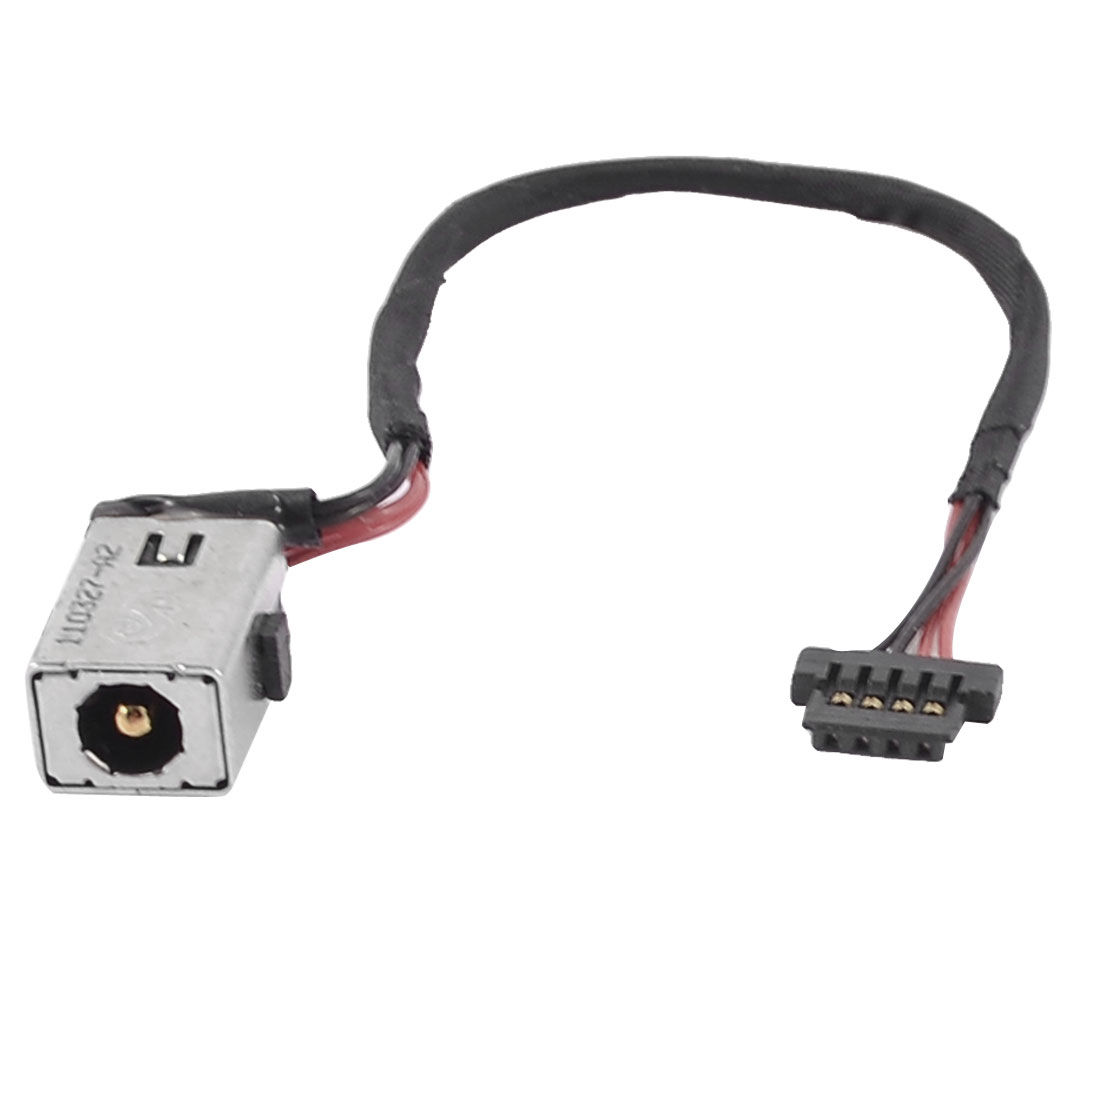 PJ405 DC Power Jack Connector Cable Scoket for HP MINI Laptop